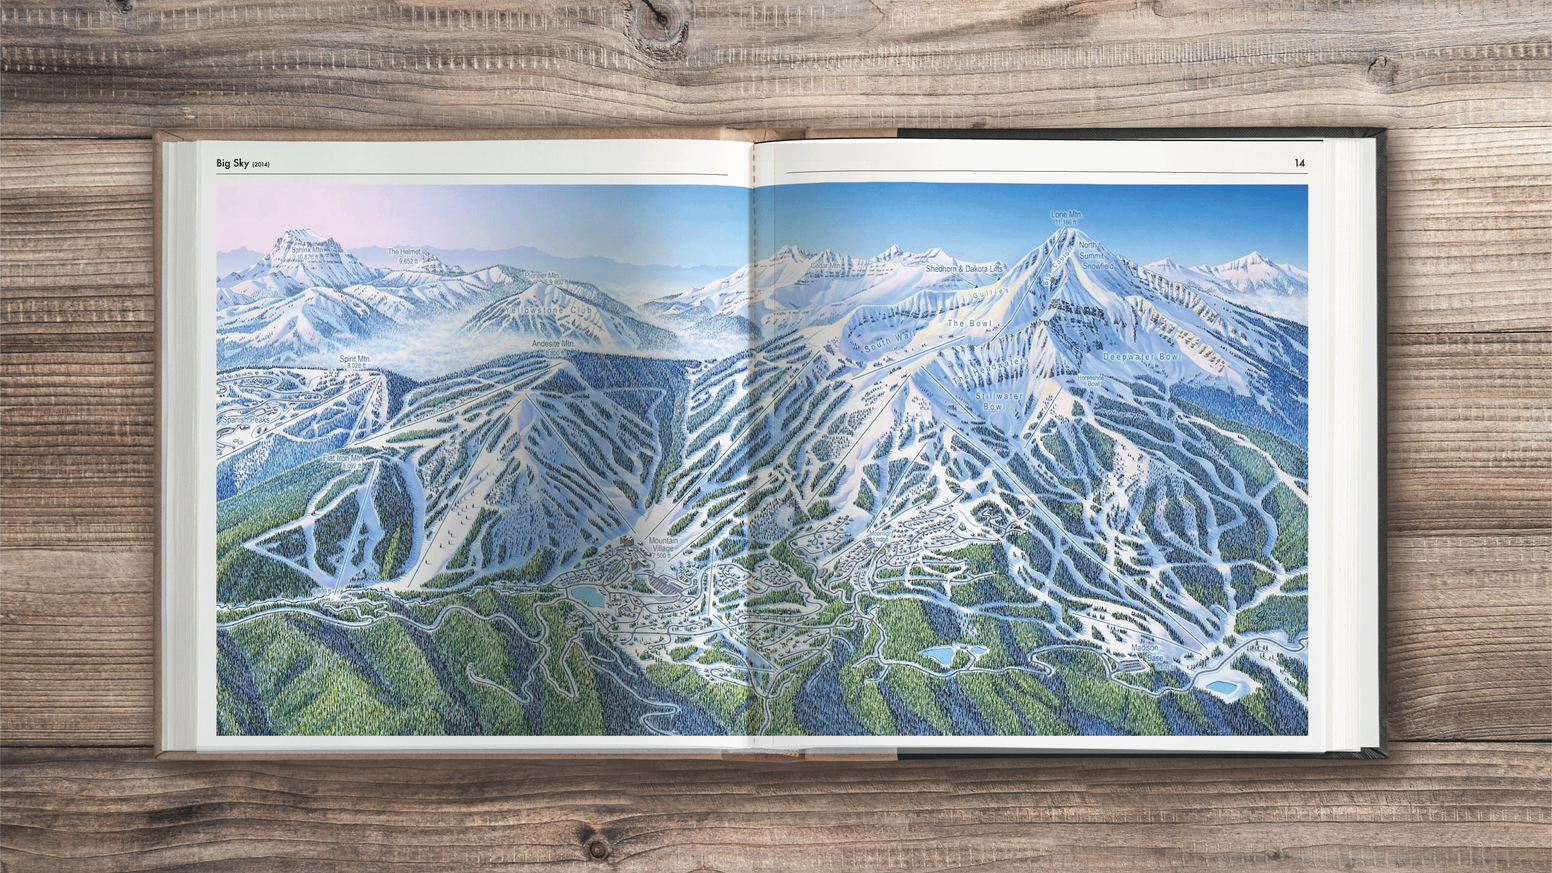 James Niehues: The Man Behind the Map by Open Road Ski ... on report book, home book, photograph book, globe book, search book, man book, model book, histroy book, poster book, select book, tut book, water book, transportation book, game book, script book, notes book, business book, address book, library book, atlas book,